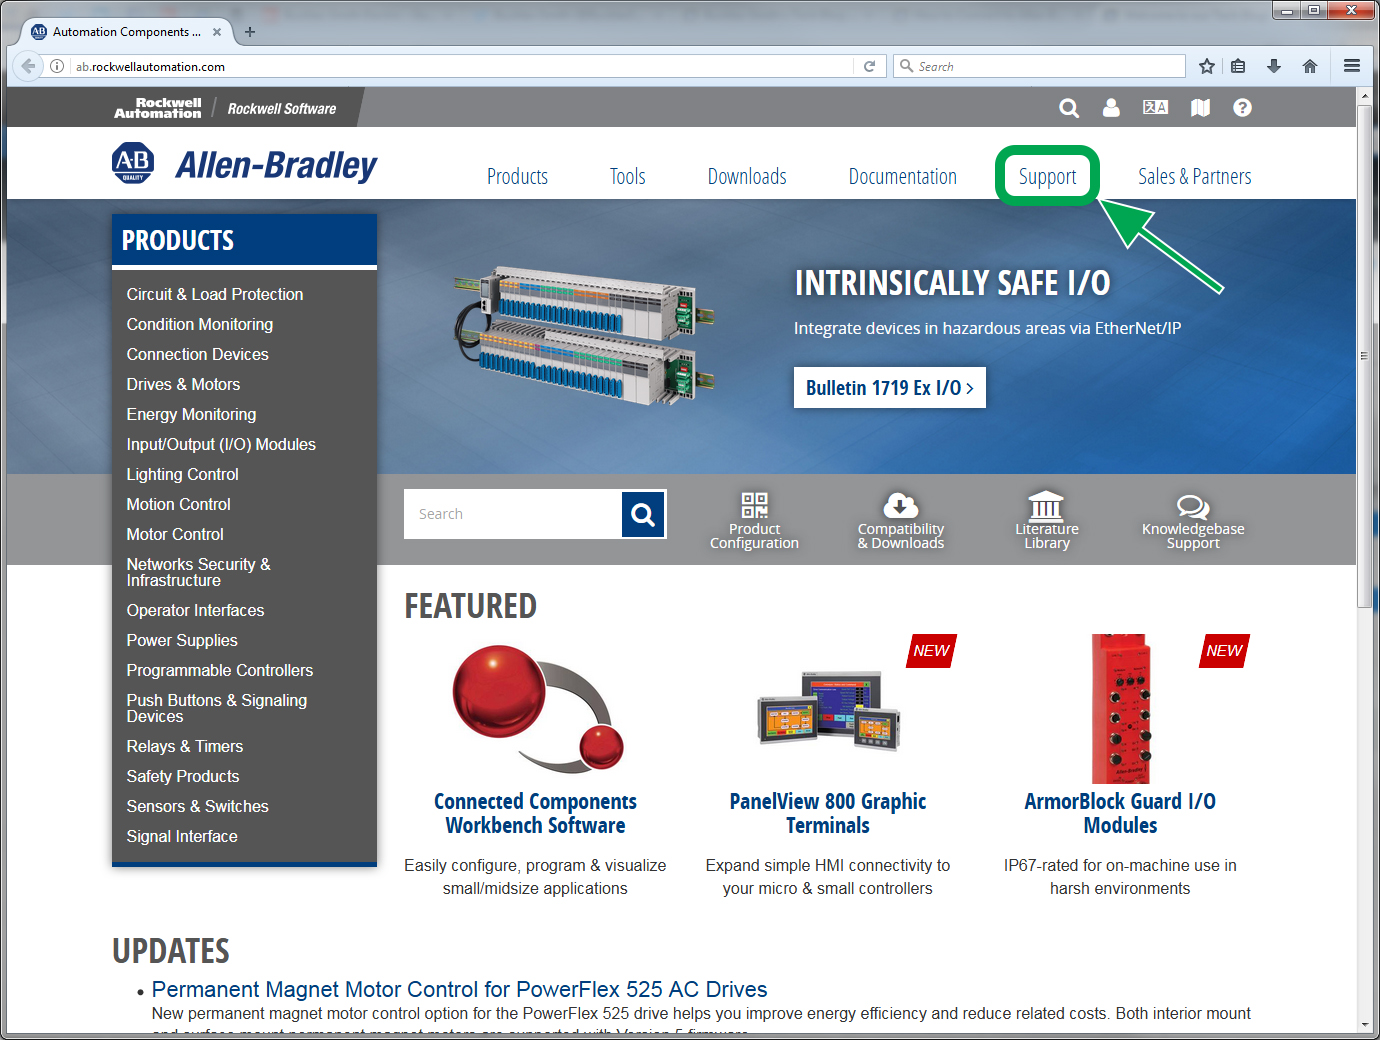 How to Search for Allen-Bradley Product Lifecycle Status